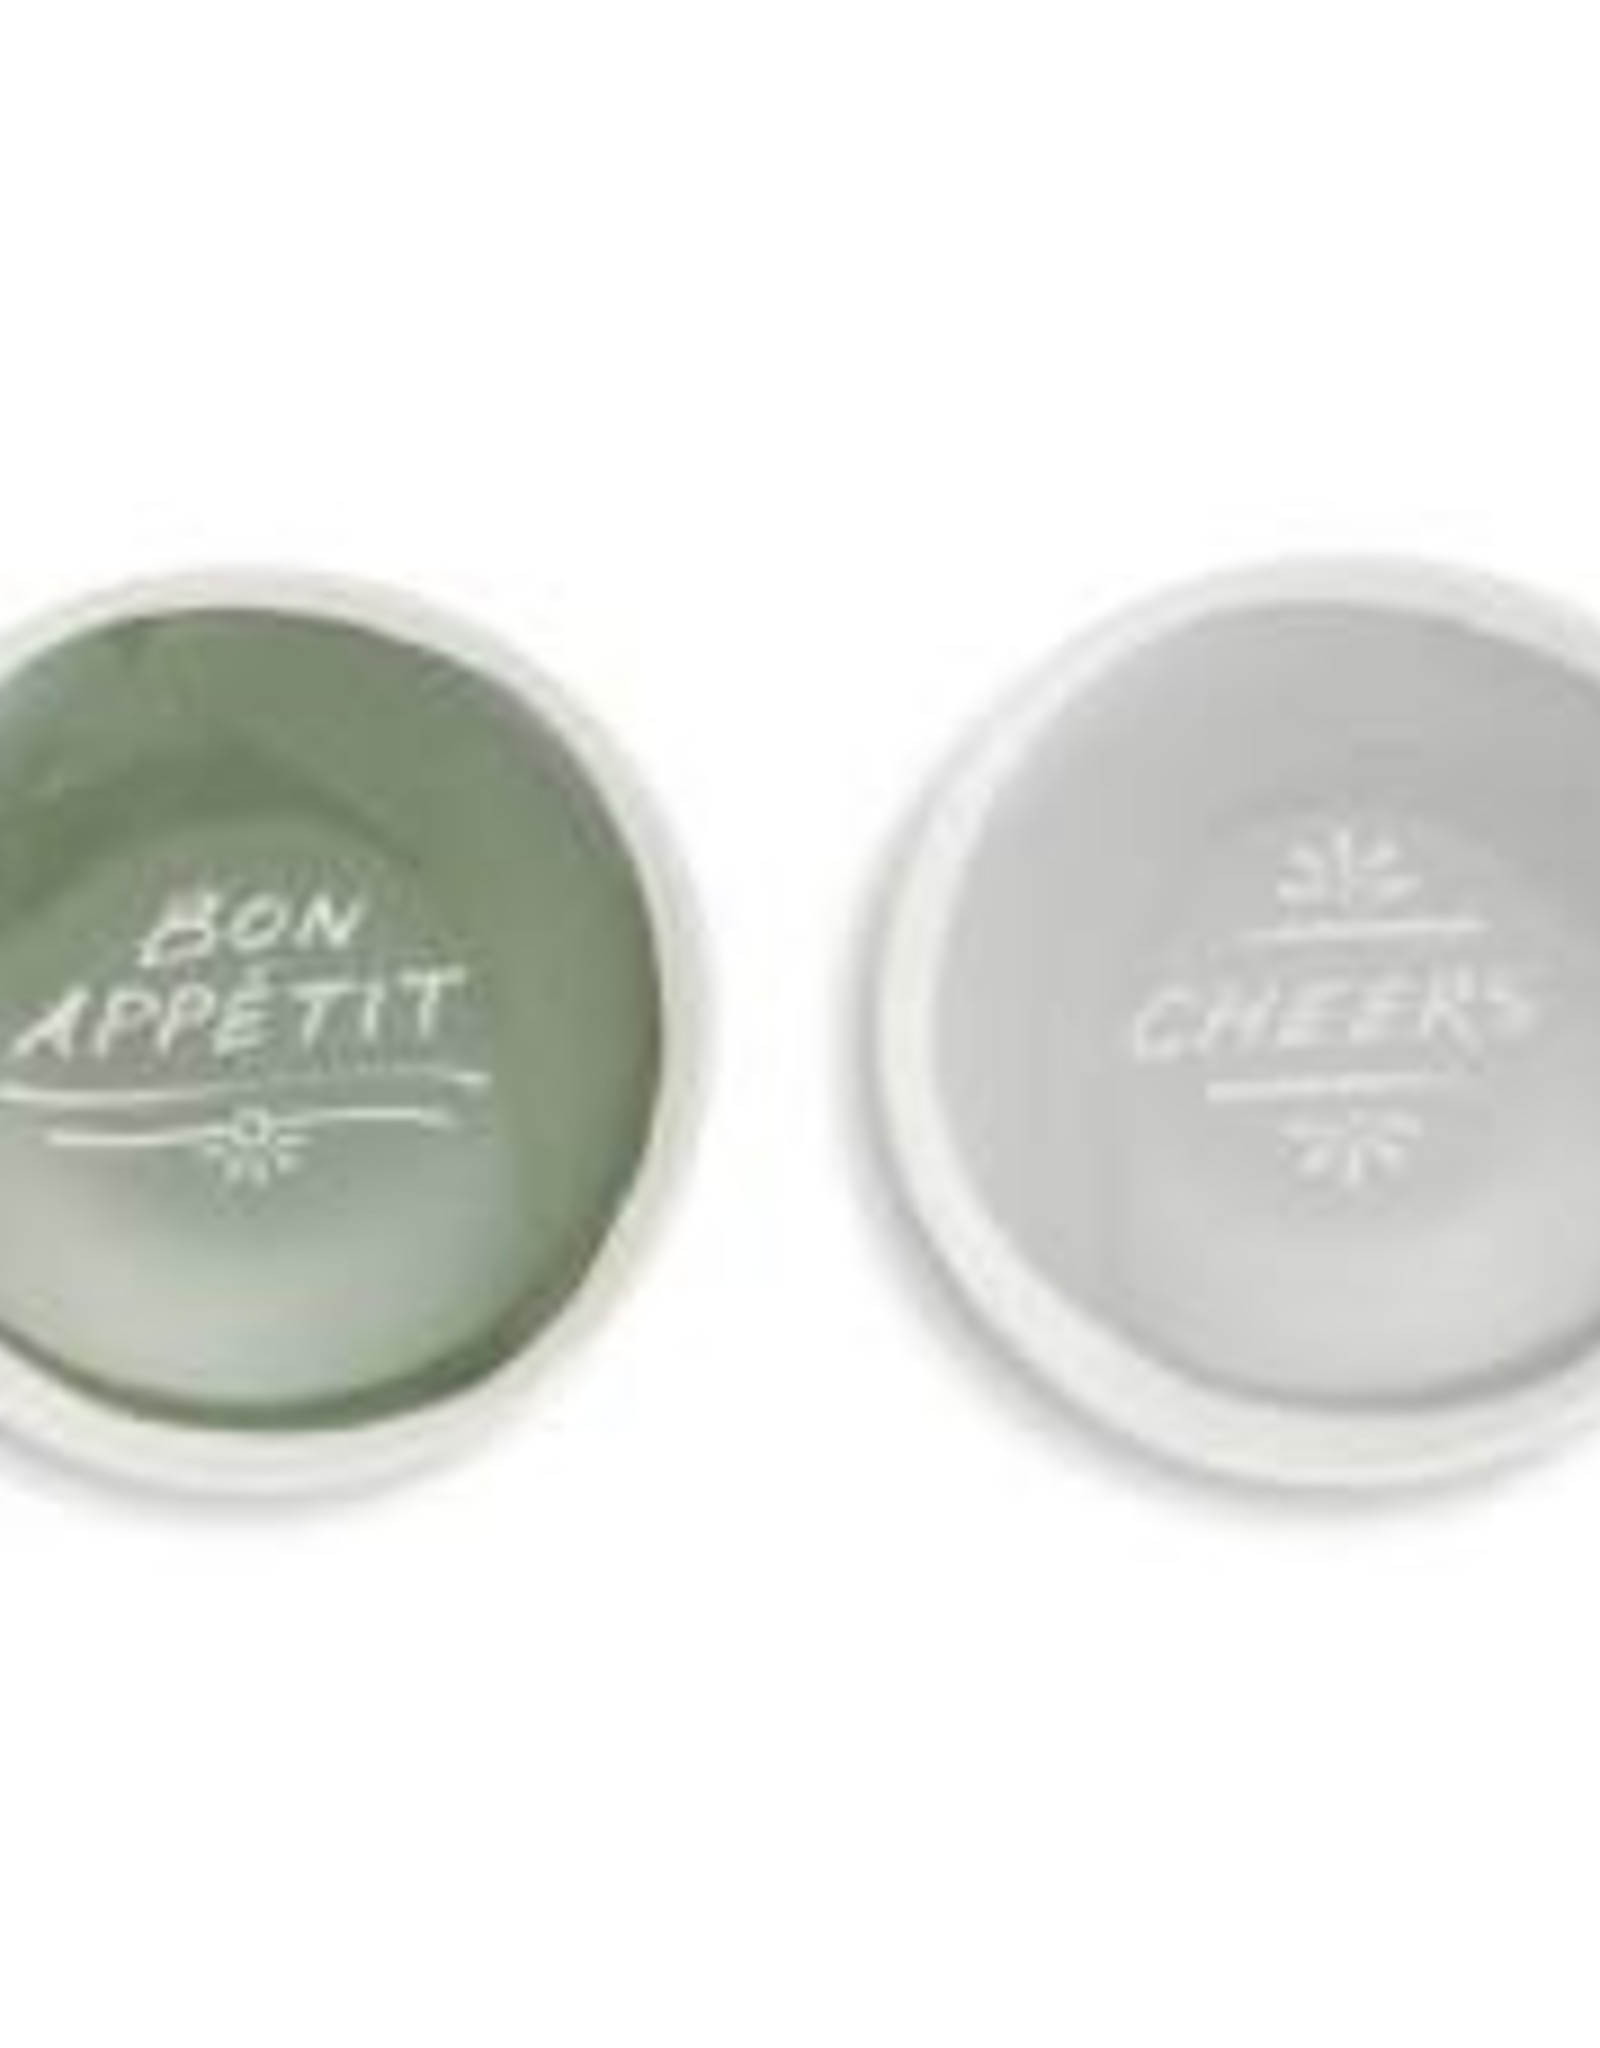 Appetizer Plates, Set of 2, Cheers